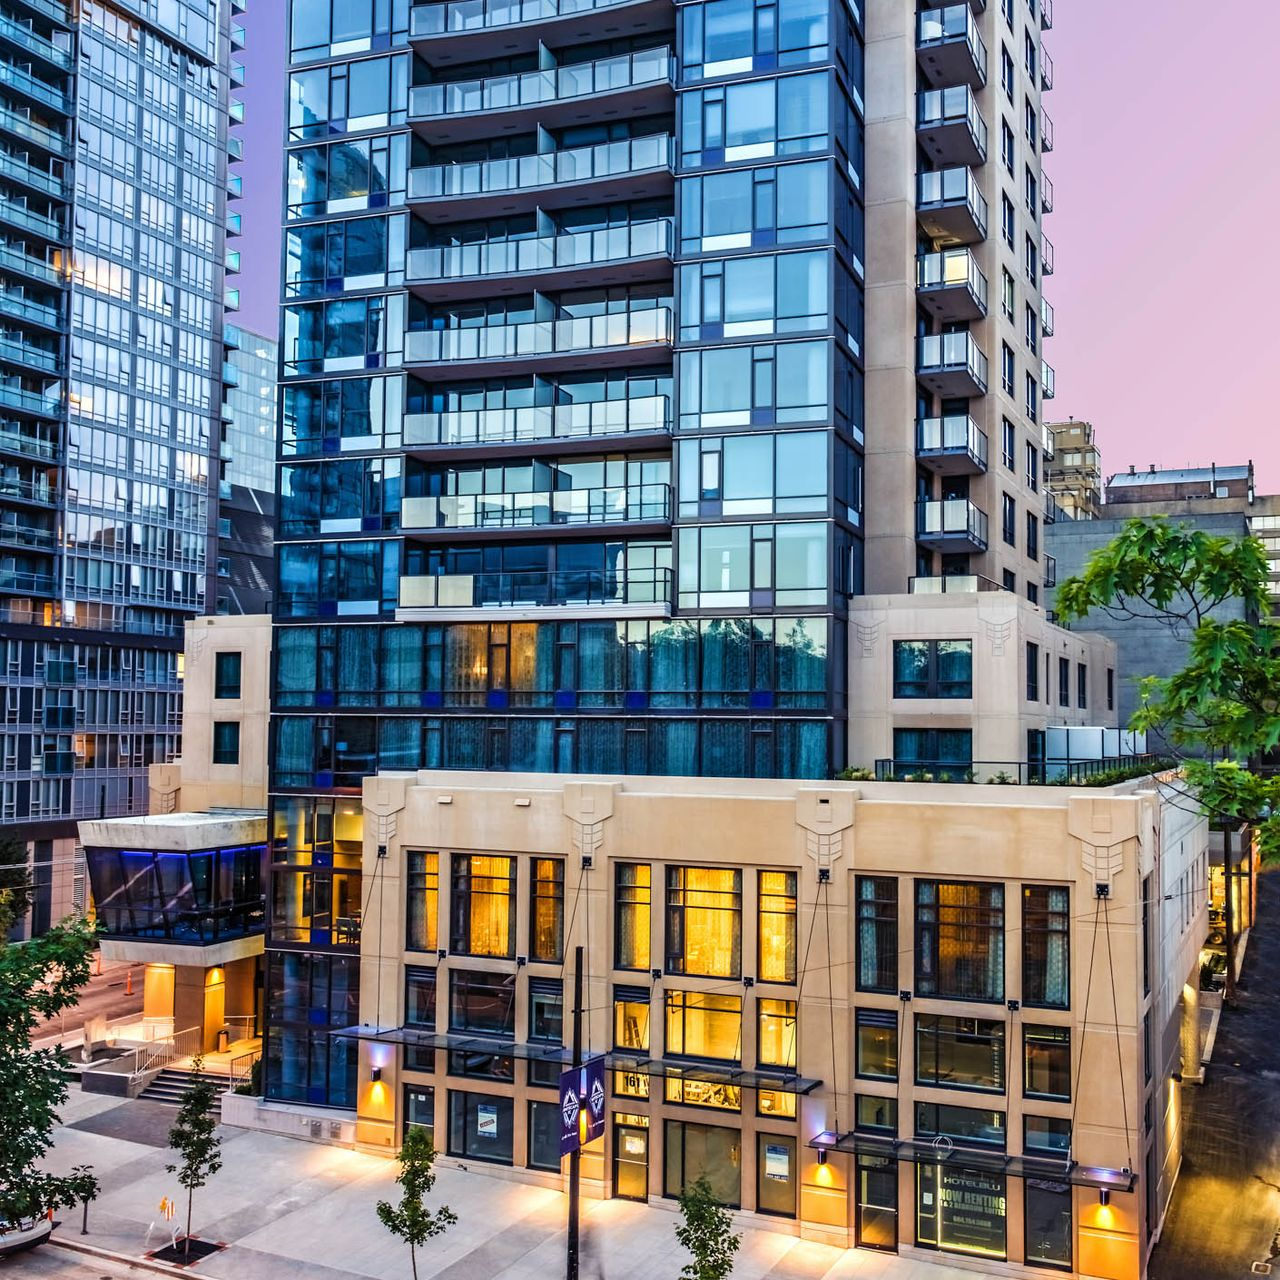 Hotel british columbia hotel blu vancouver canusa for Stylische hotels